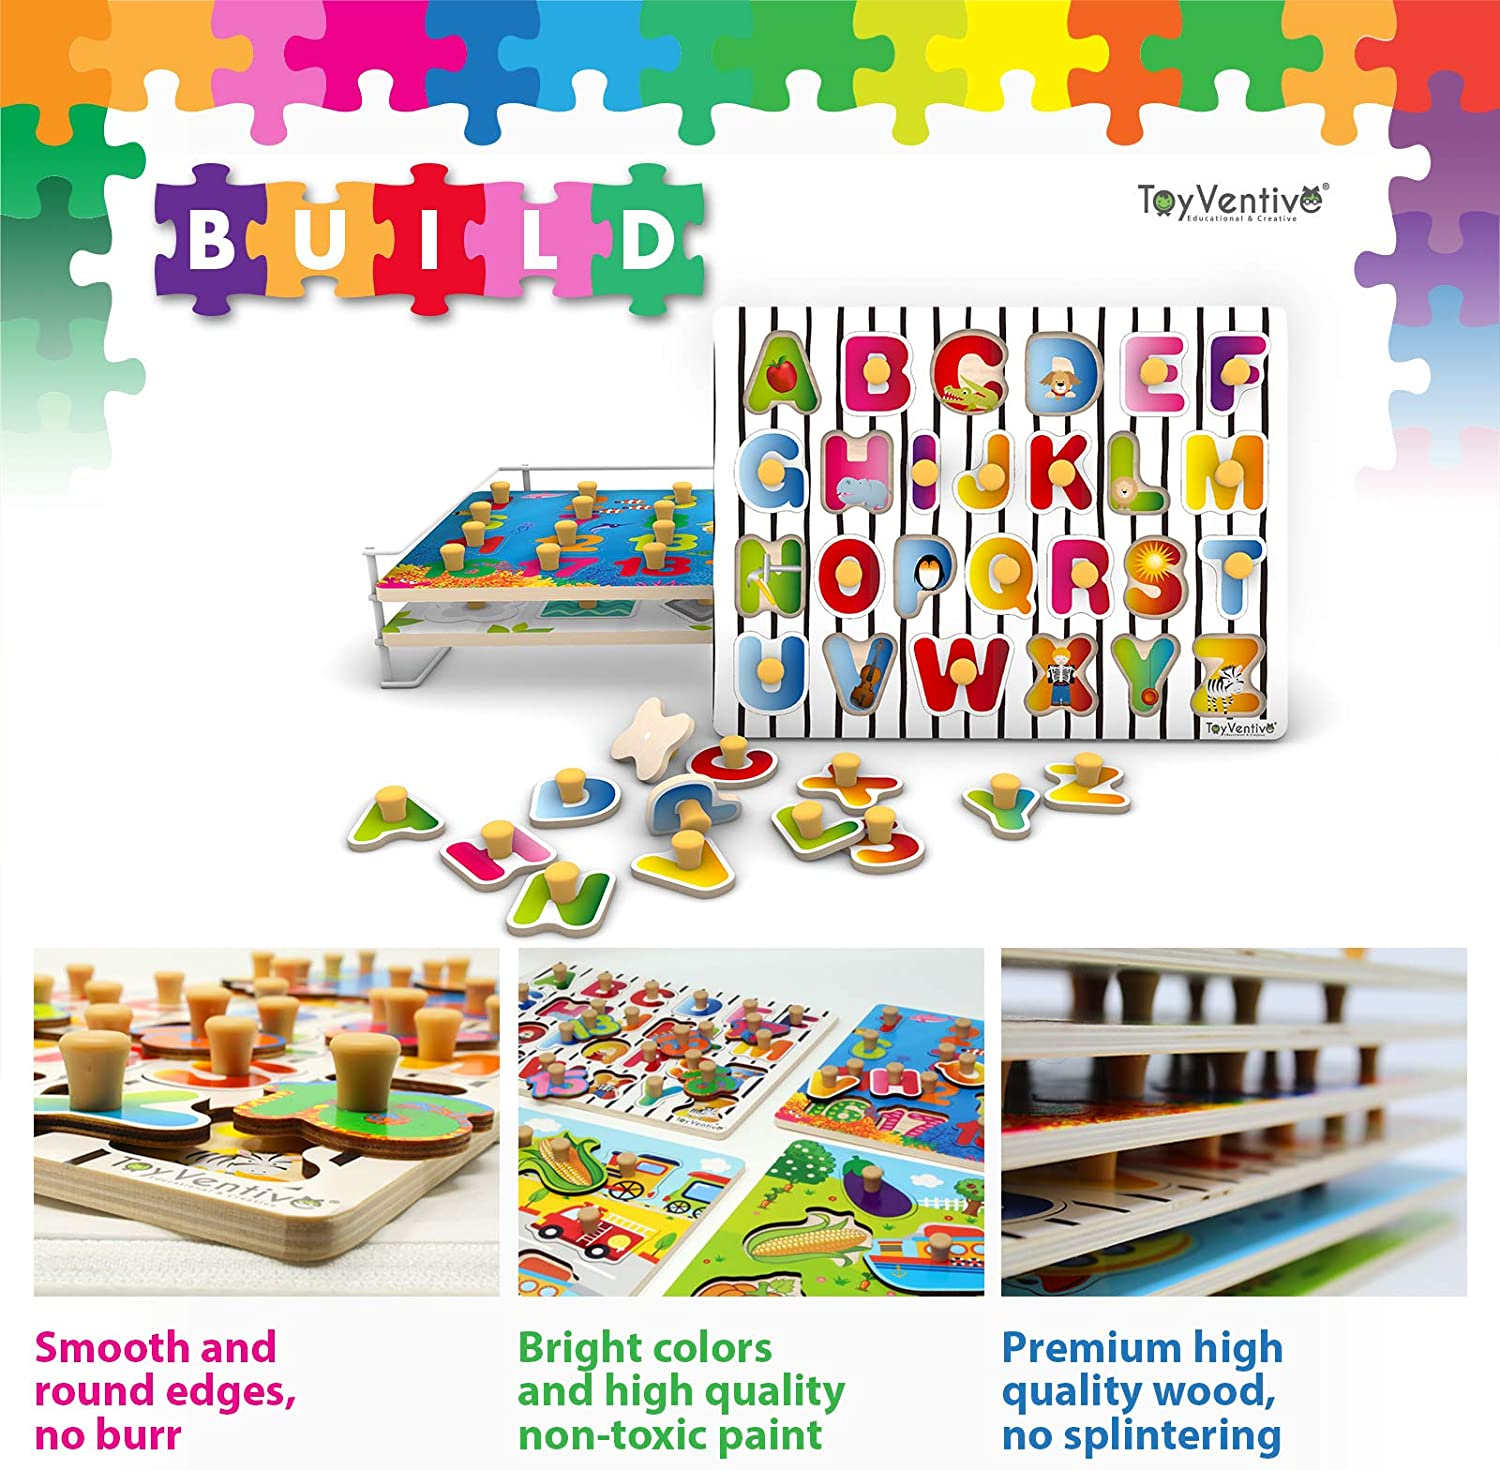 Shape Alphabet TOYVENTIVE Wooden Toddler Puzzles with Storage Rack 3 Pack Wood Preschool Peg Knob Puzzle with Wire Holder Organizer Rack for Kids Number